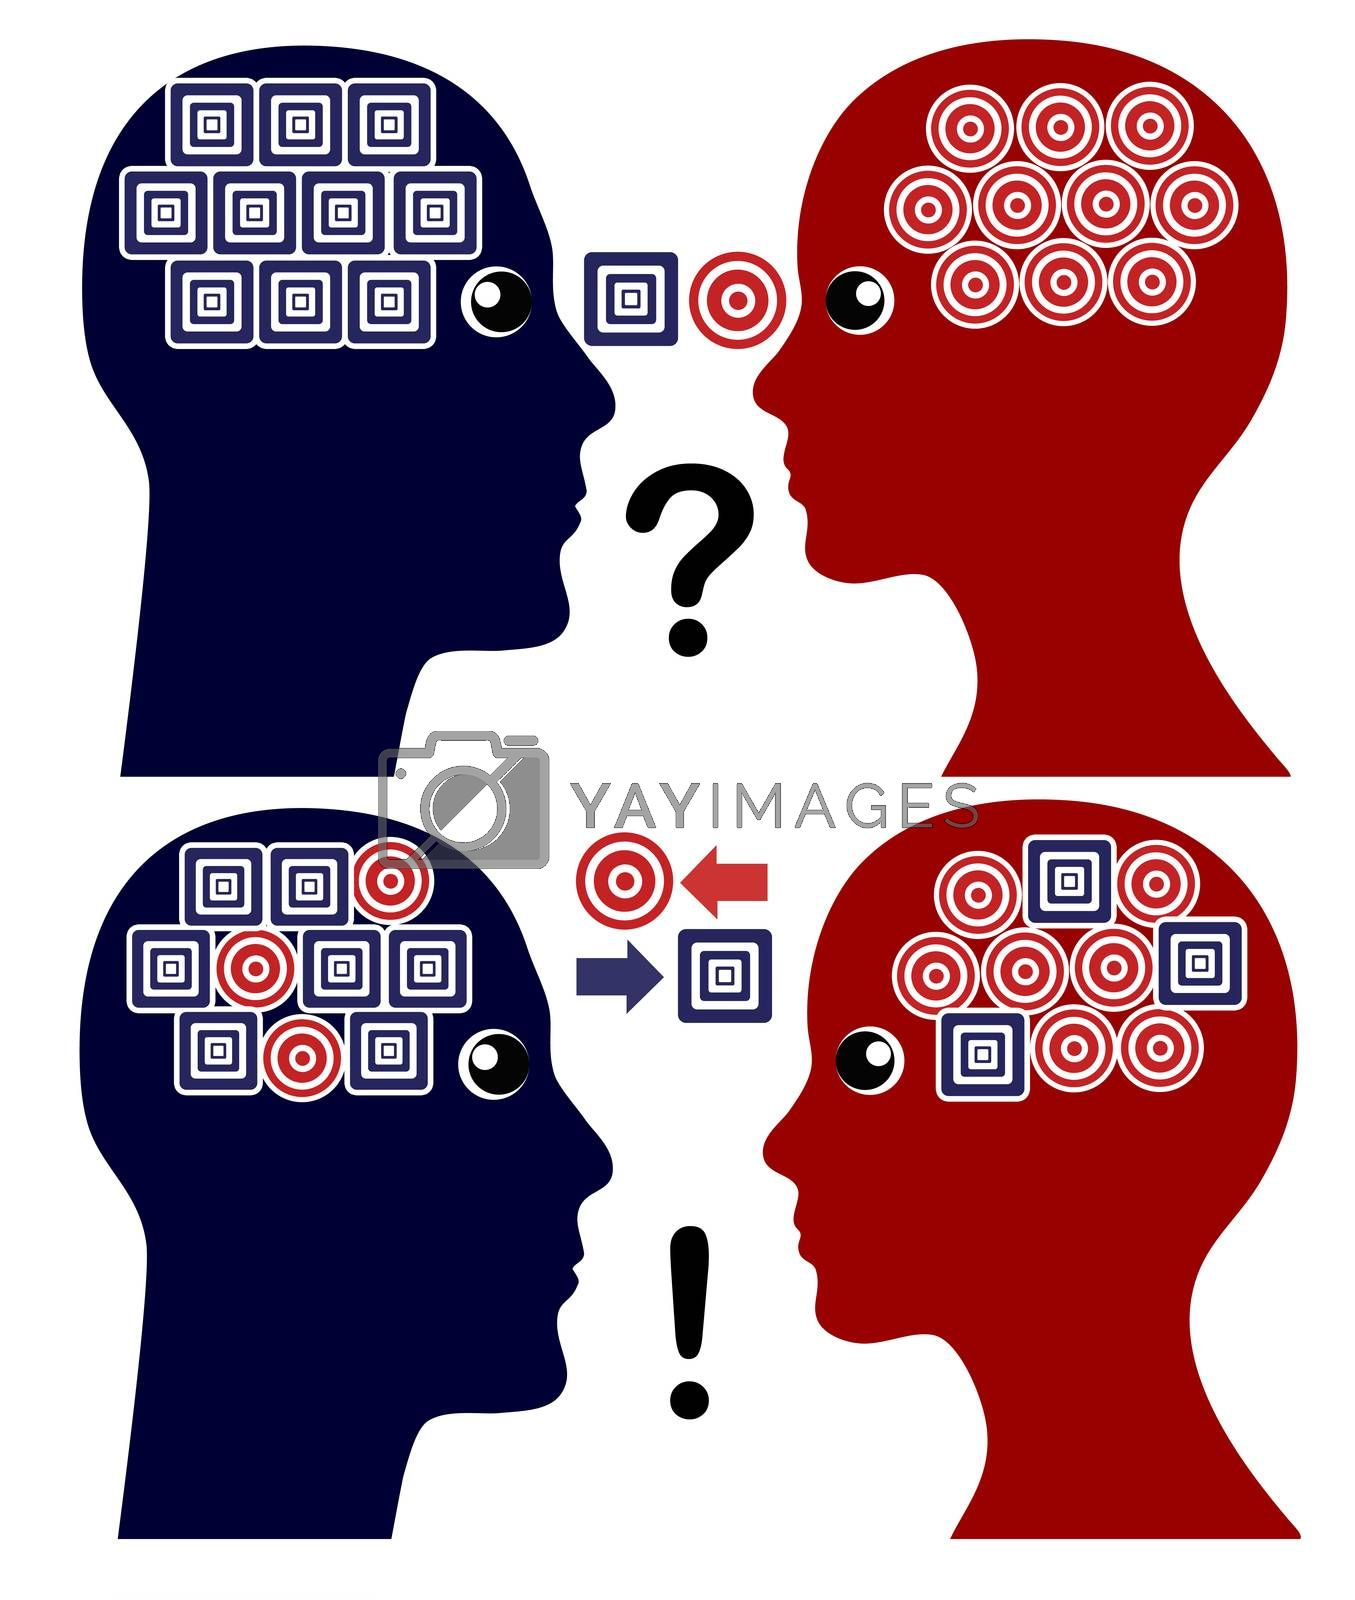 Couple overcomes communication problems by exchanging their different point of views